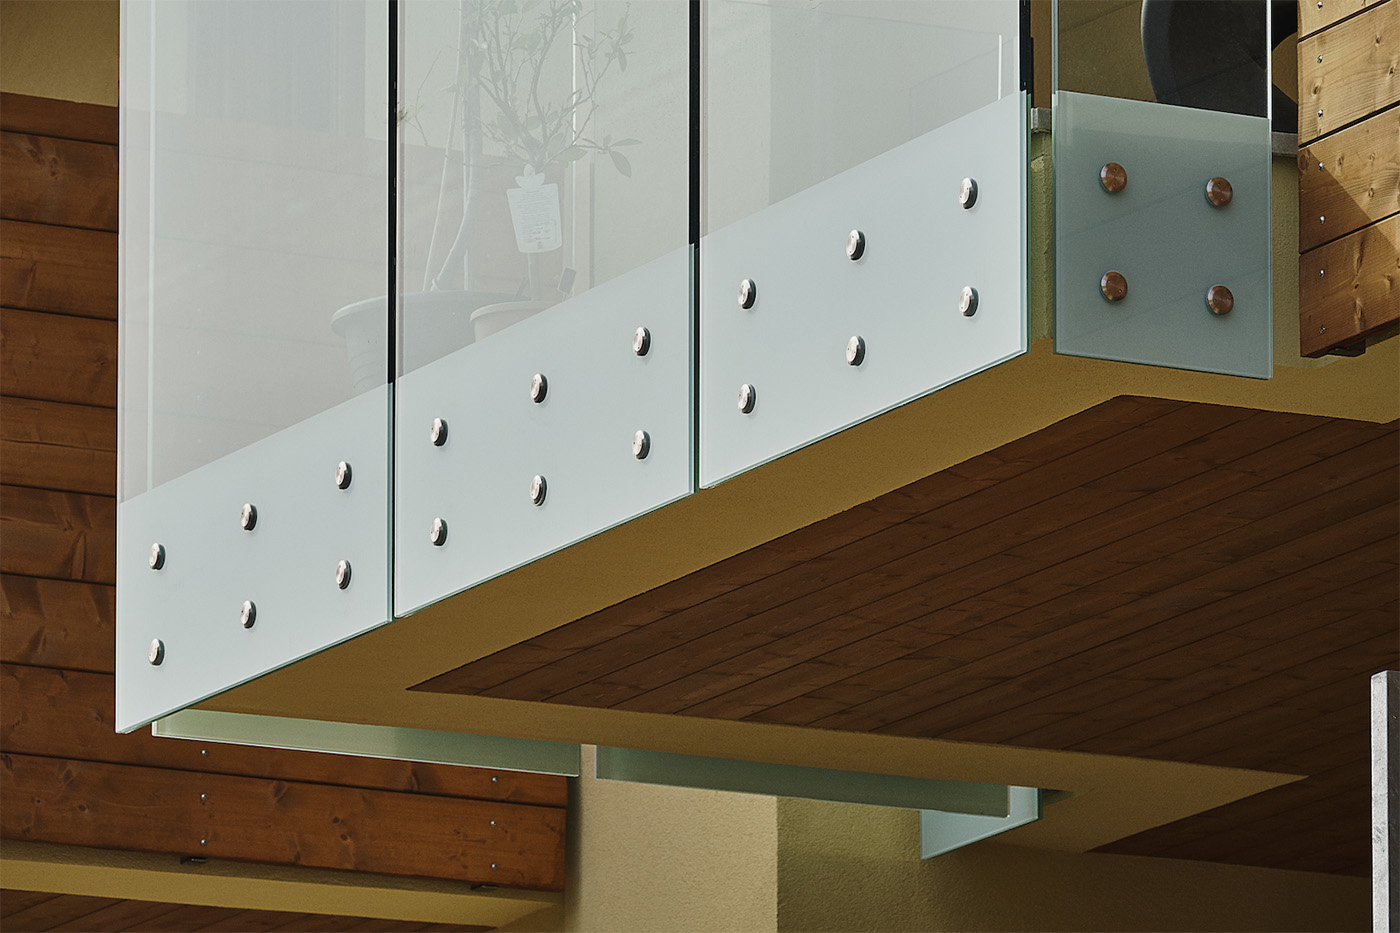 Detail of the Point Aluvetro glass balustrade attachment